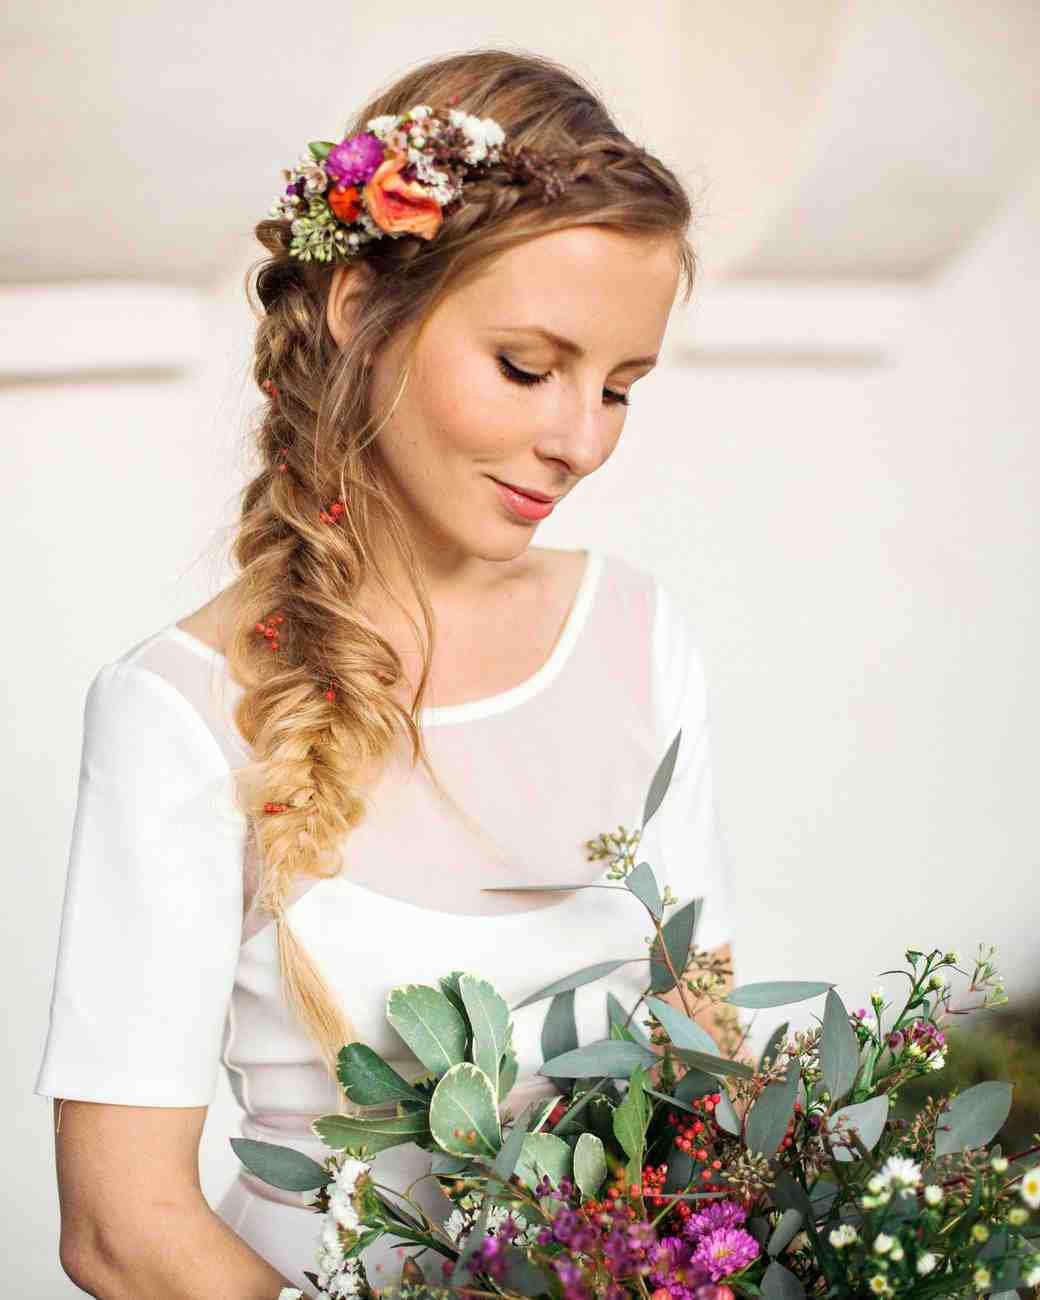 The Best Boho Chic Wedding Ideas For Free Spirited Brides And Grooms Martha Stewart Weddings Pictures